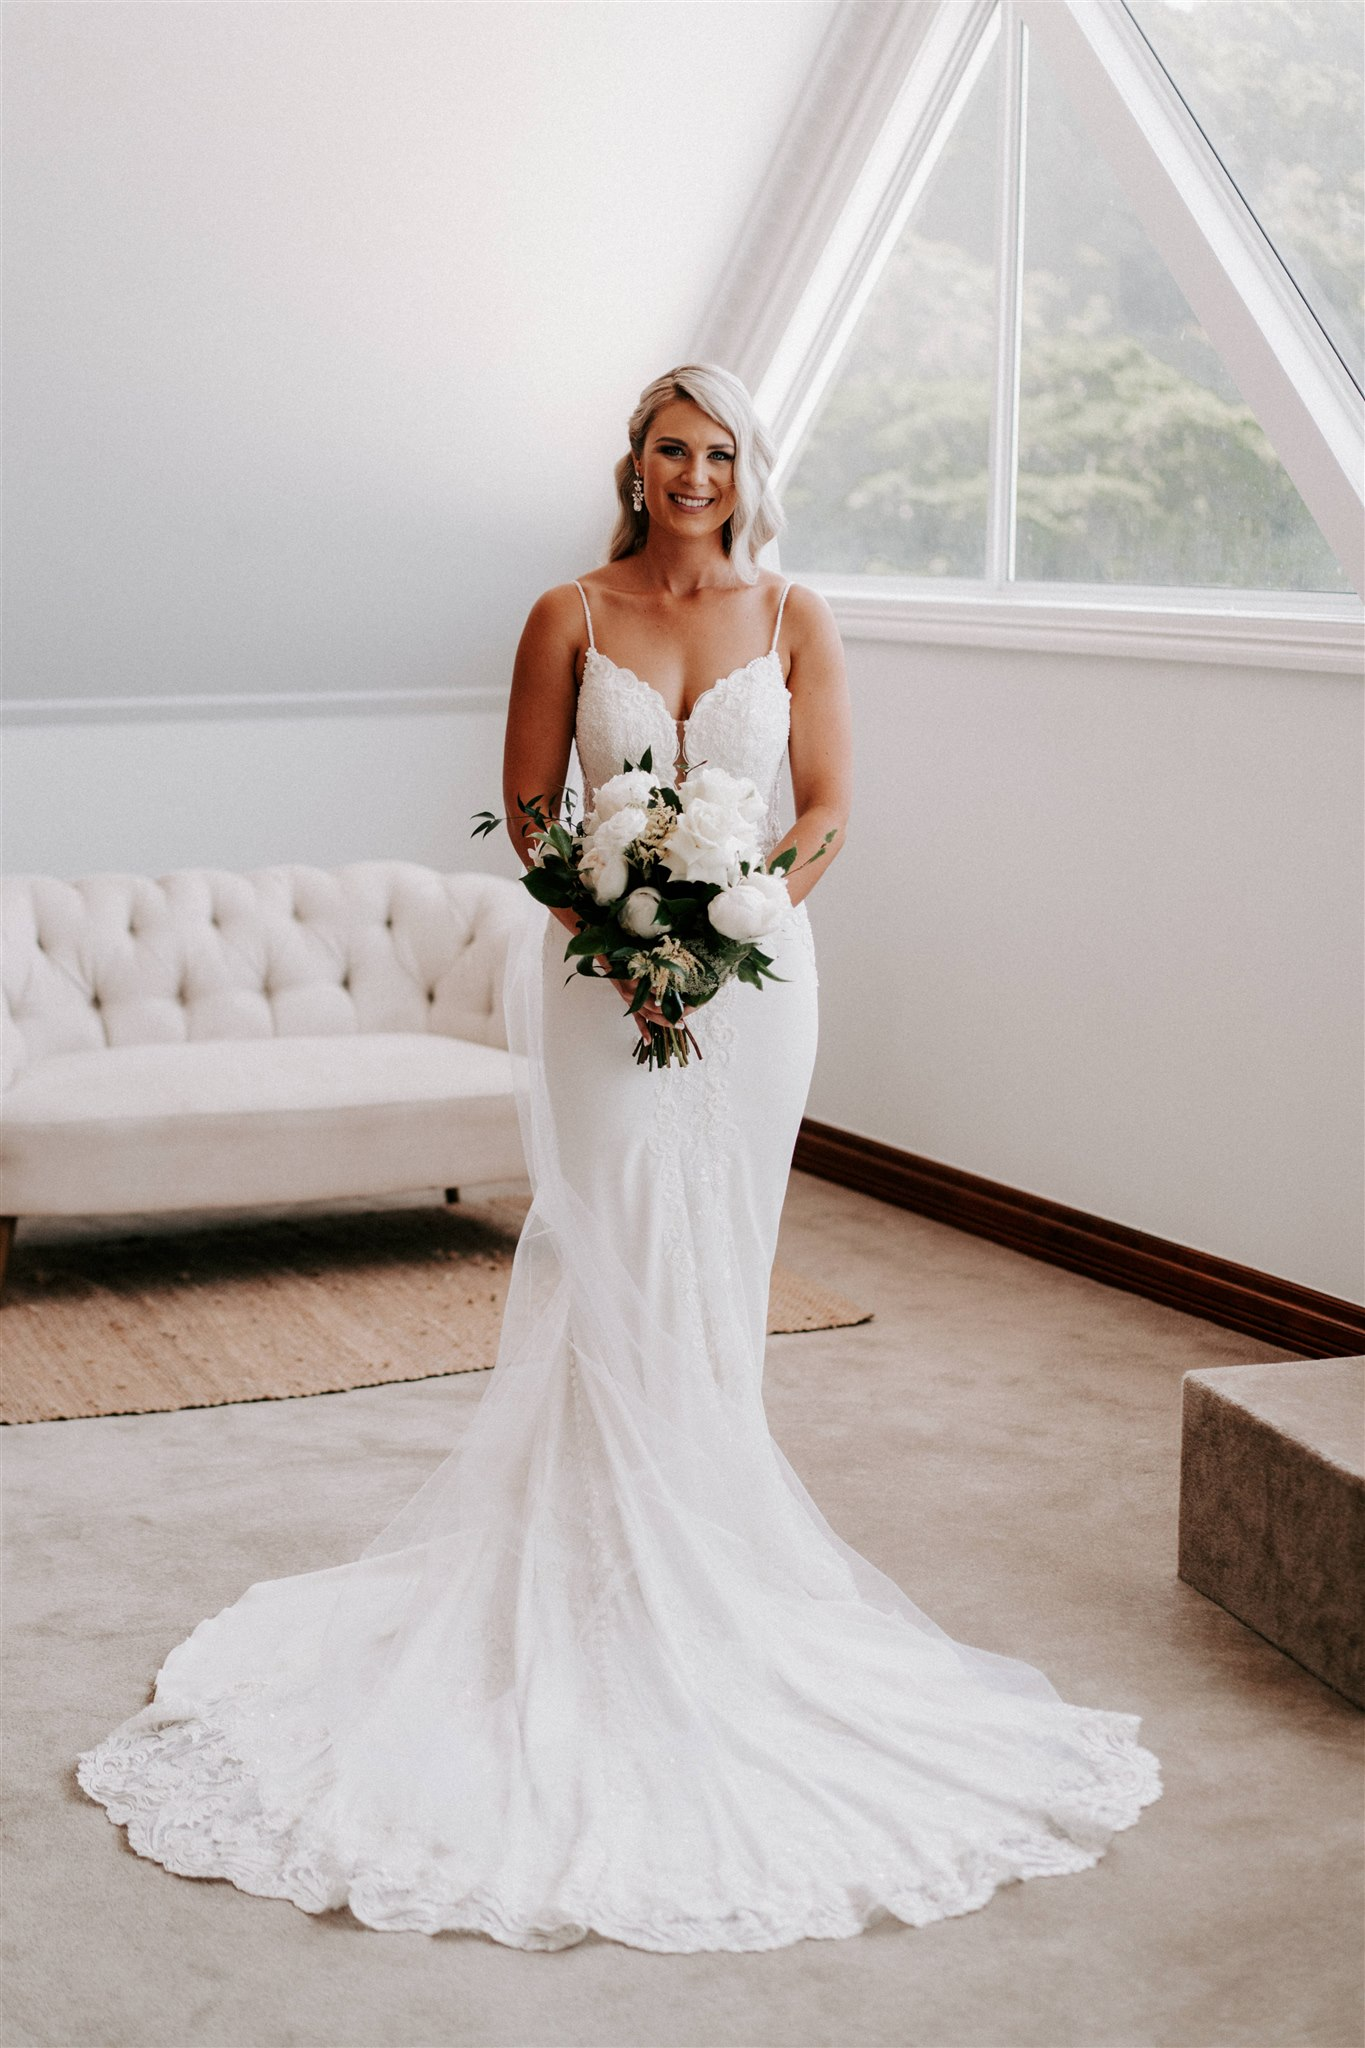 White and green wedding bouquet featuring roses